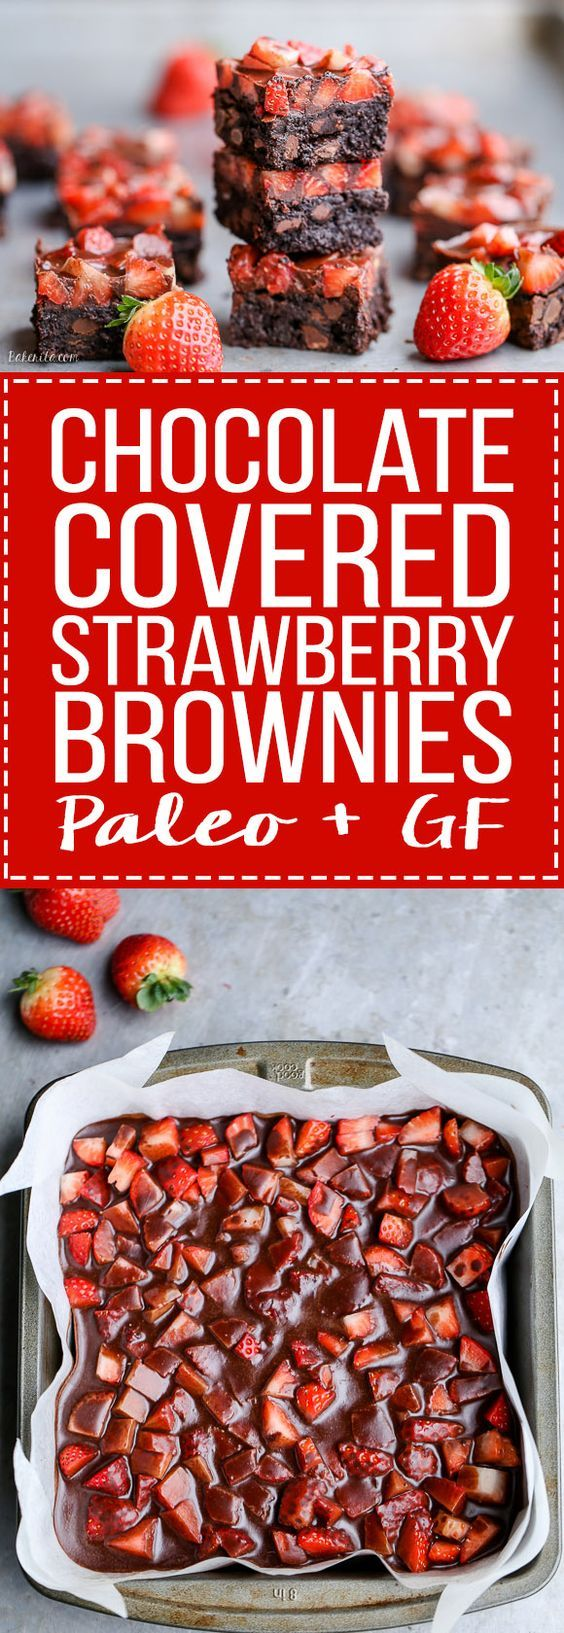 These Chocolate Covered Strawberry Brownies are a swoon-worthy and surprisingly guilt-free treat - they're gluten-free, refined sugar-free, and Paleo! The perfect healthy Valentines treat.